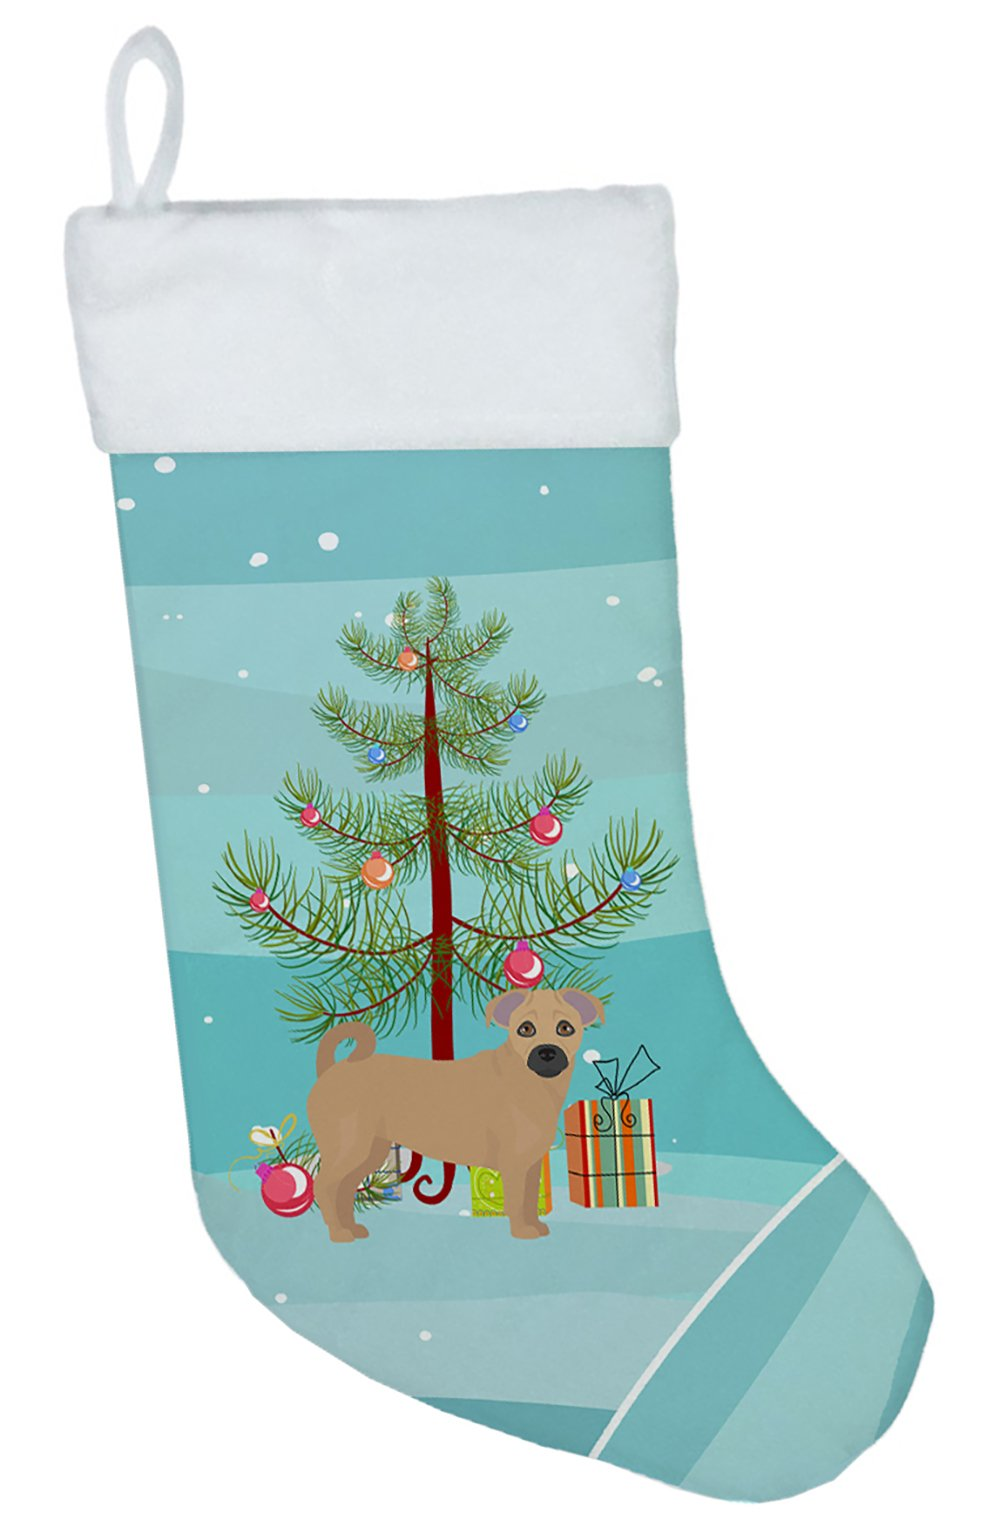 Tan Jug Christmas Tree Christmas Stocking CK3845CS by Caroline's Treasures